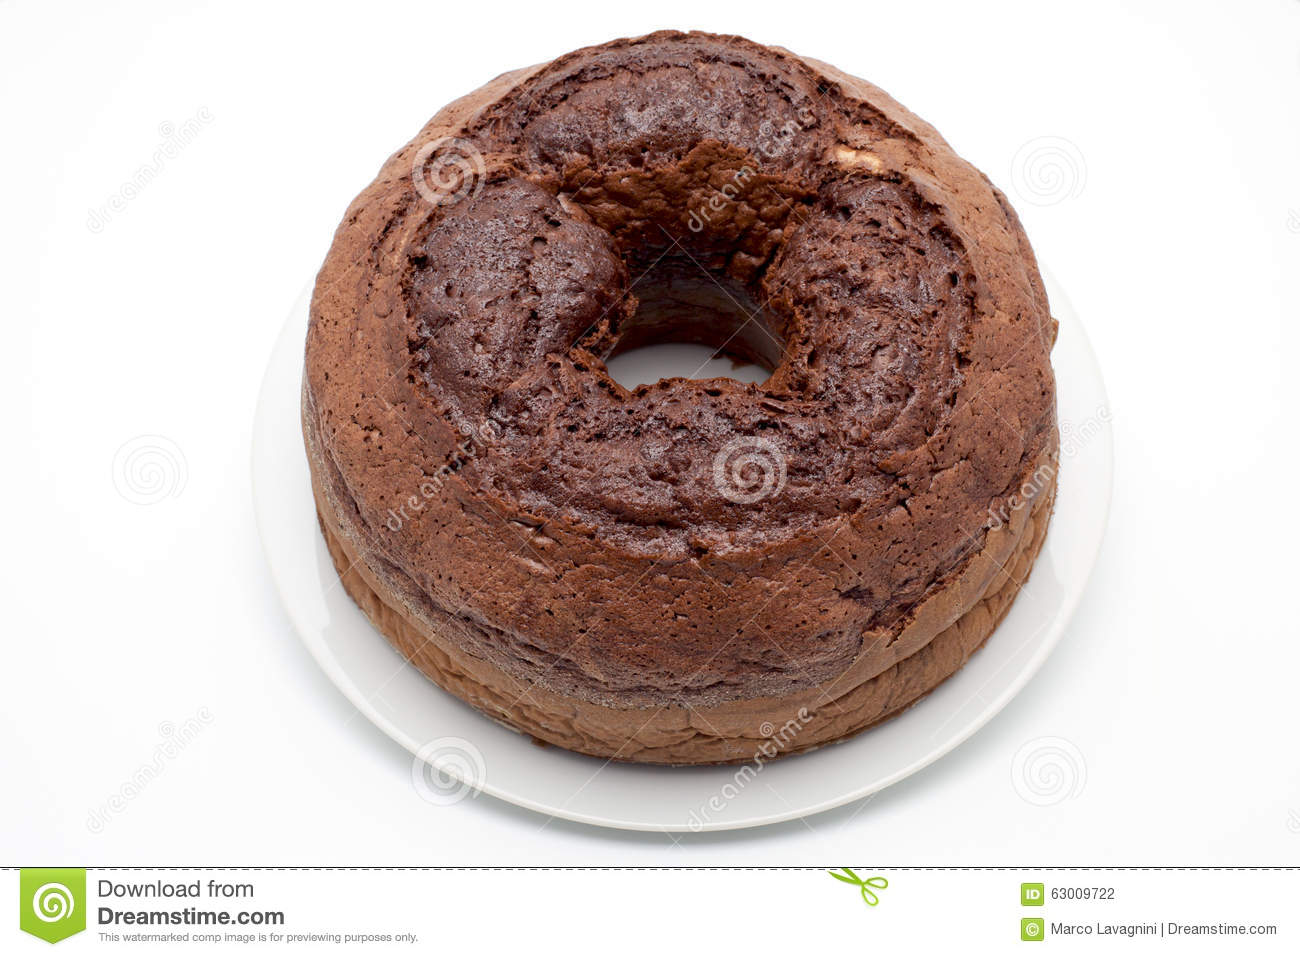 Pure Chocolate Cake Images : Ciambellone (pure Chocolate) Stock Photo - Image: 63009722